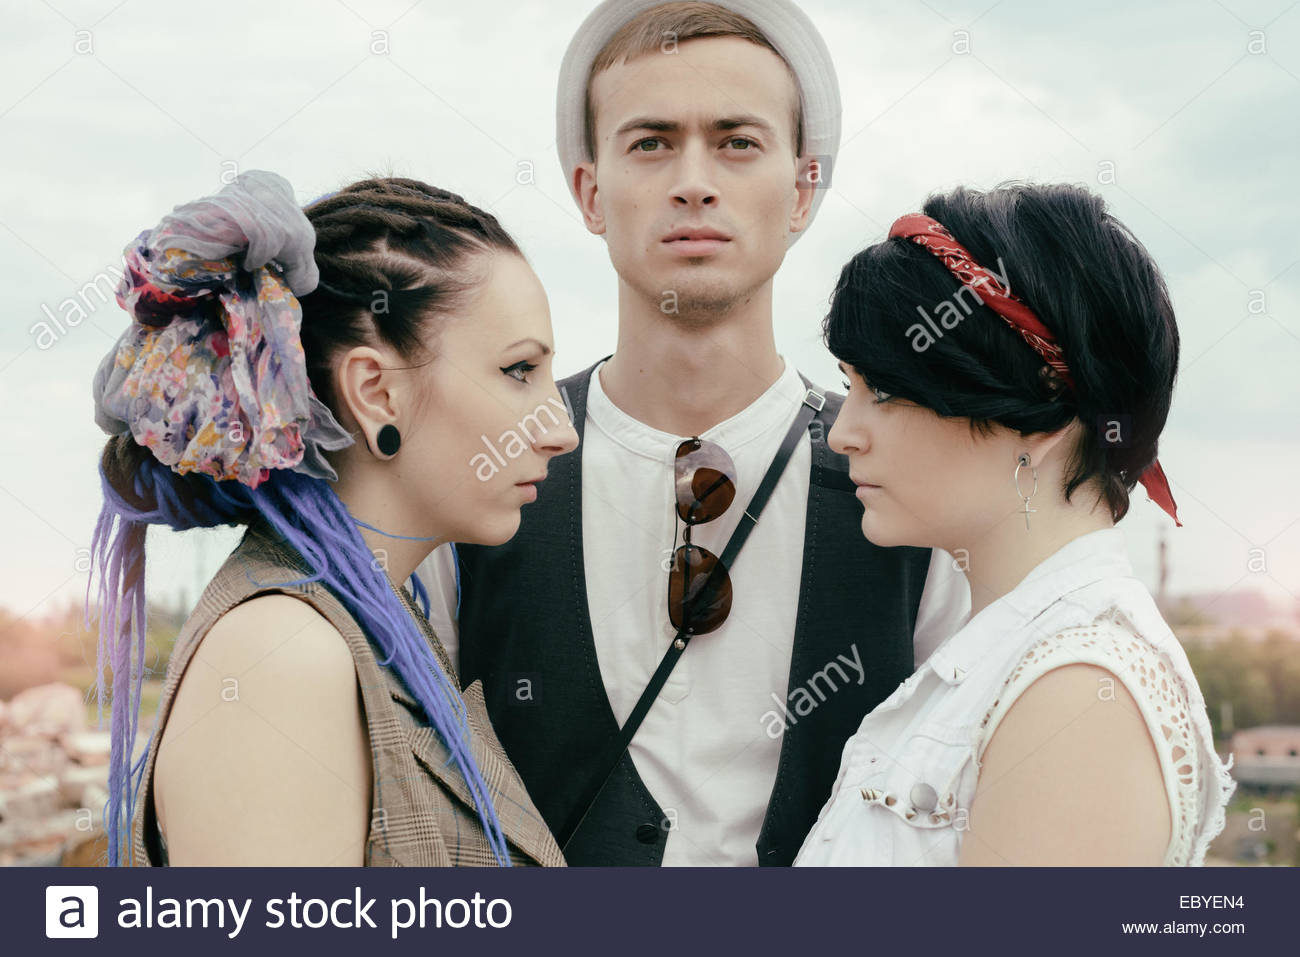 love triangle the young guy before a choice in resistance of two girls - Stock Image